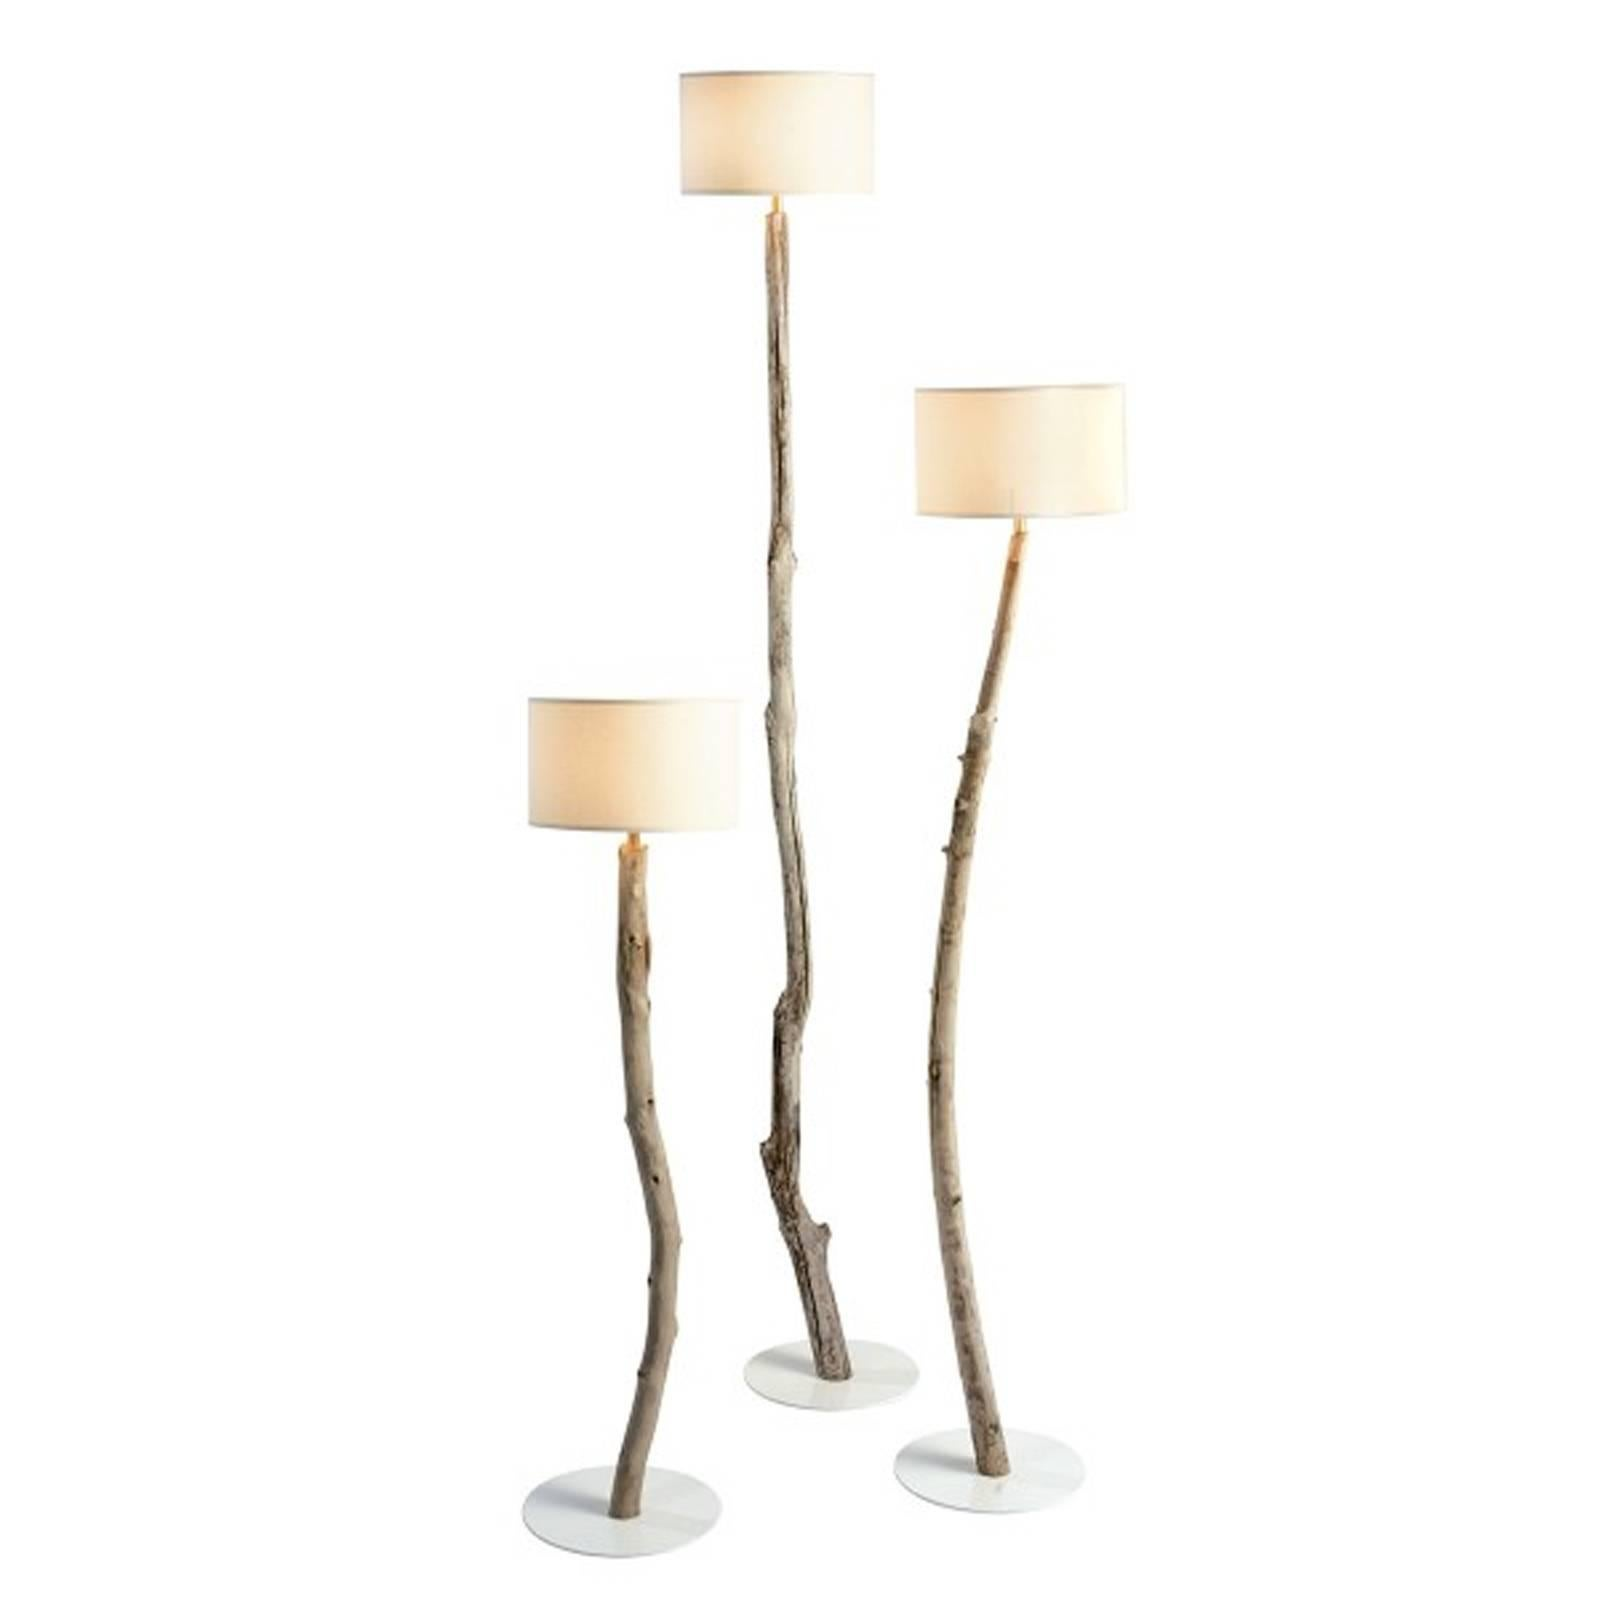 Driftwood Floor Lamps Set of Three in Natural Driftwood